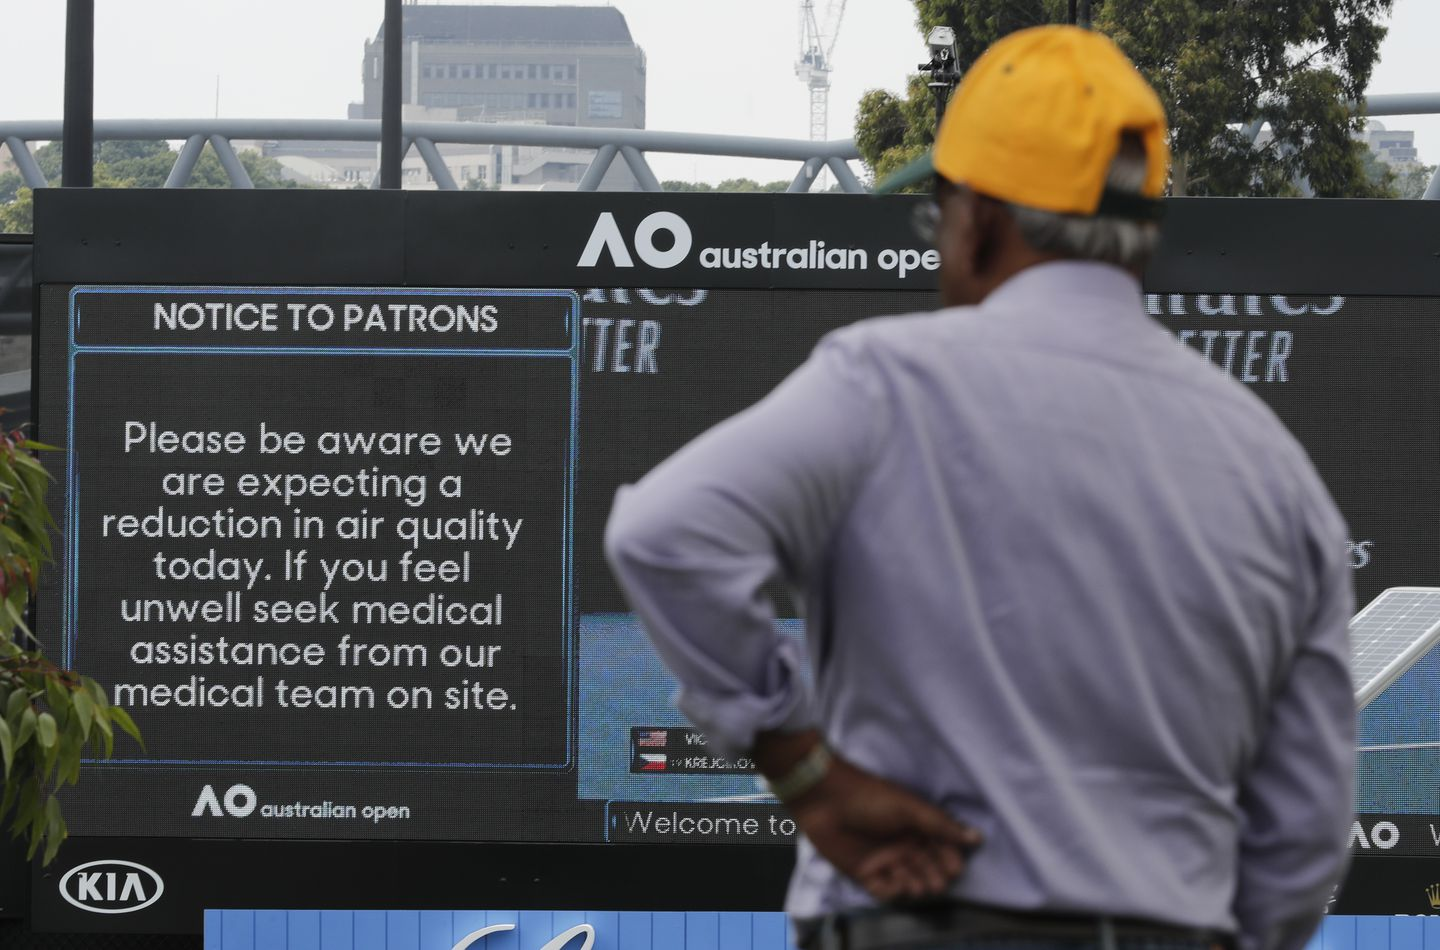 As Australian Open Nears Air Quality Remains Pressing Issue